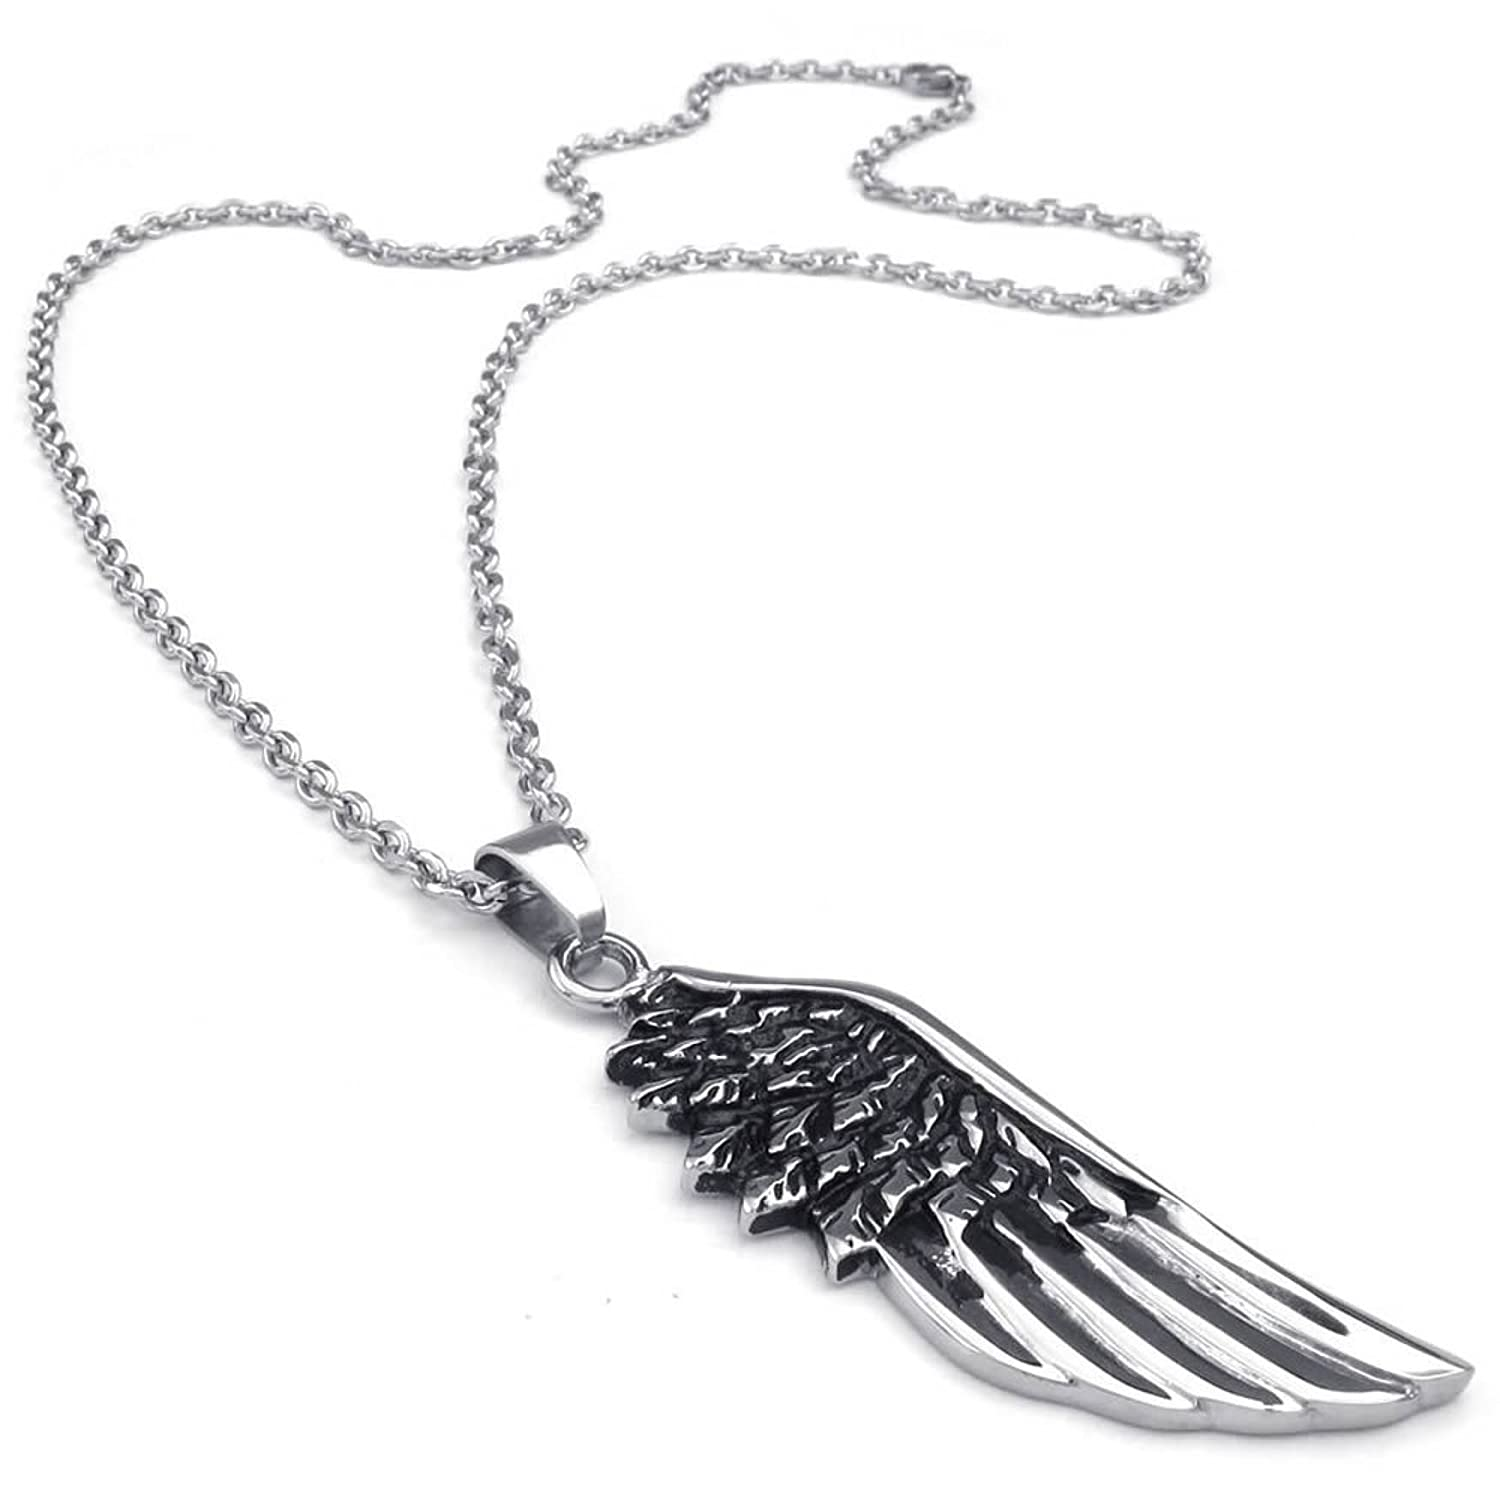 c5b2da83907c AnaZoz Stainless Steel Black Silver Mens Pendant Necklace Angel Wing ...